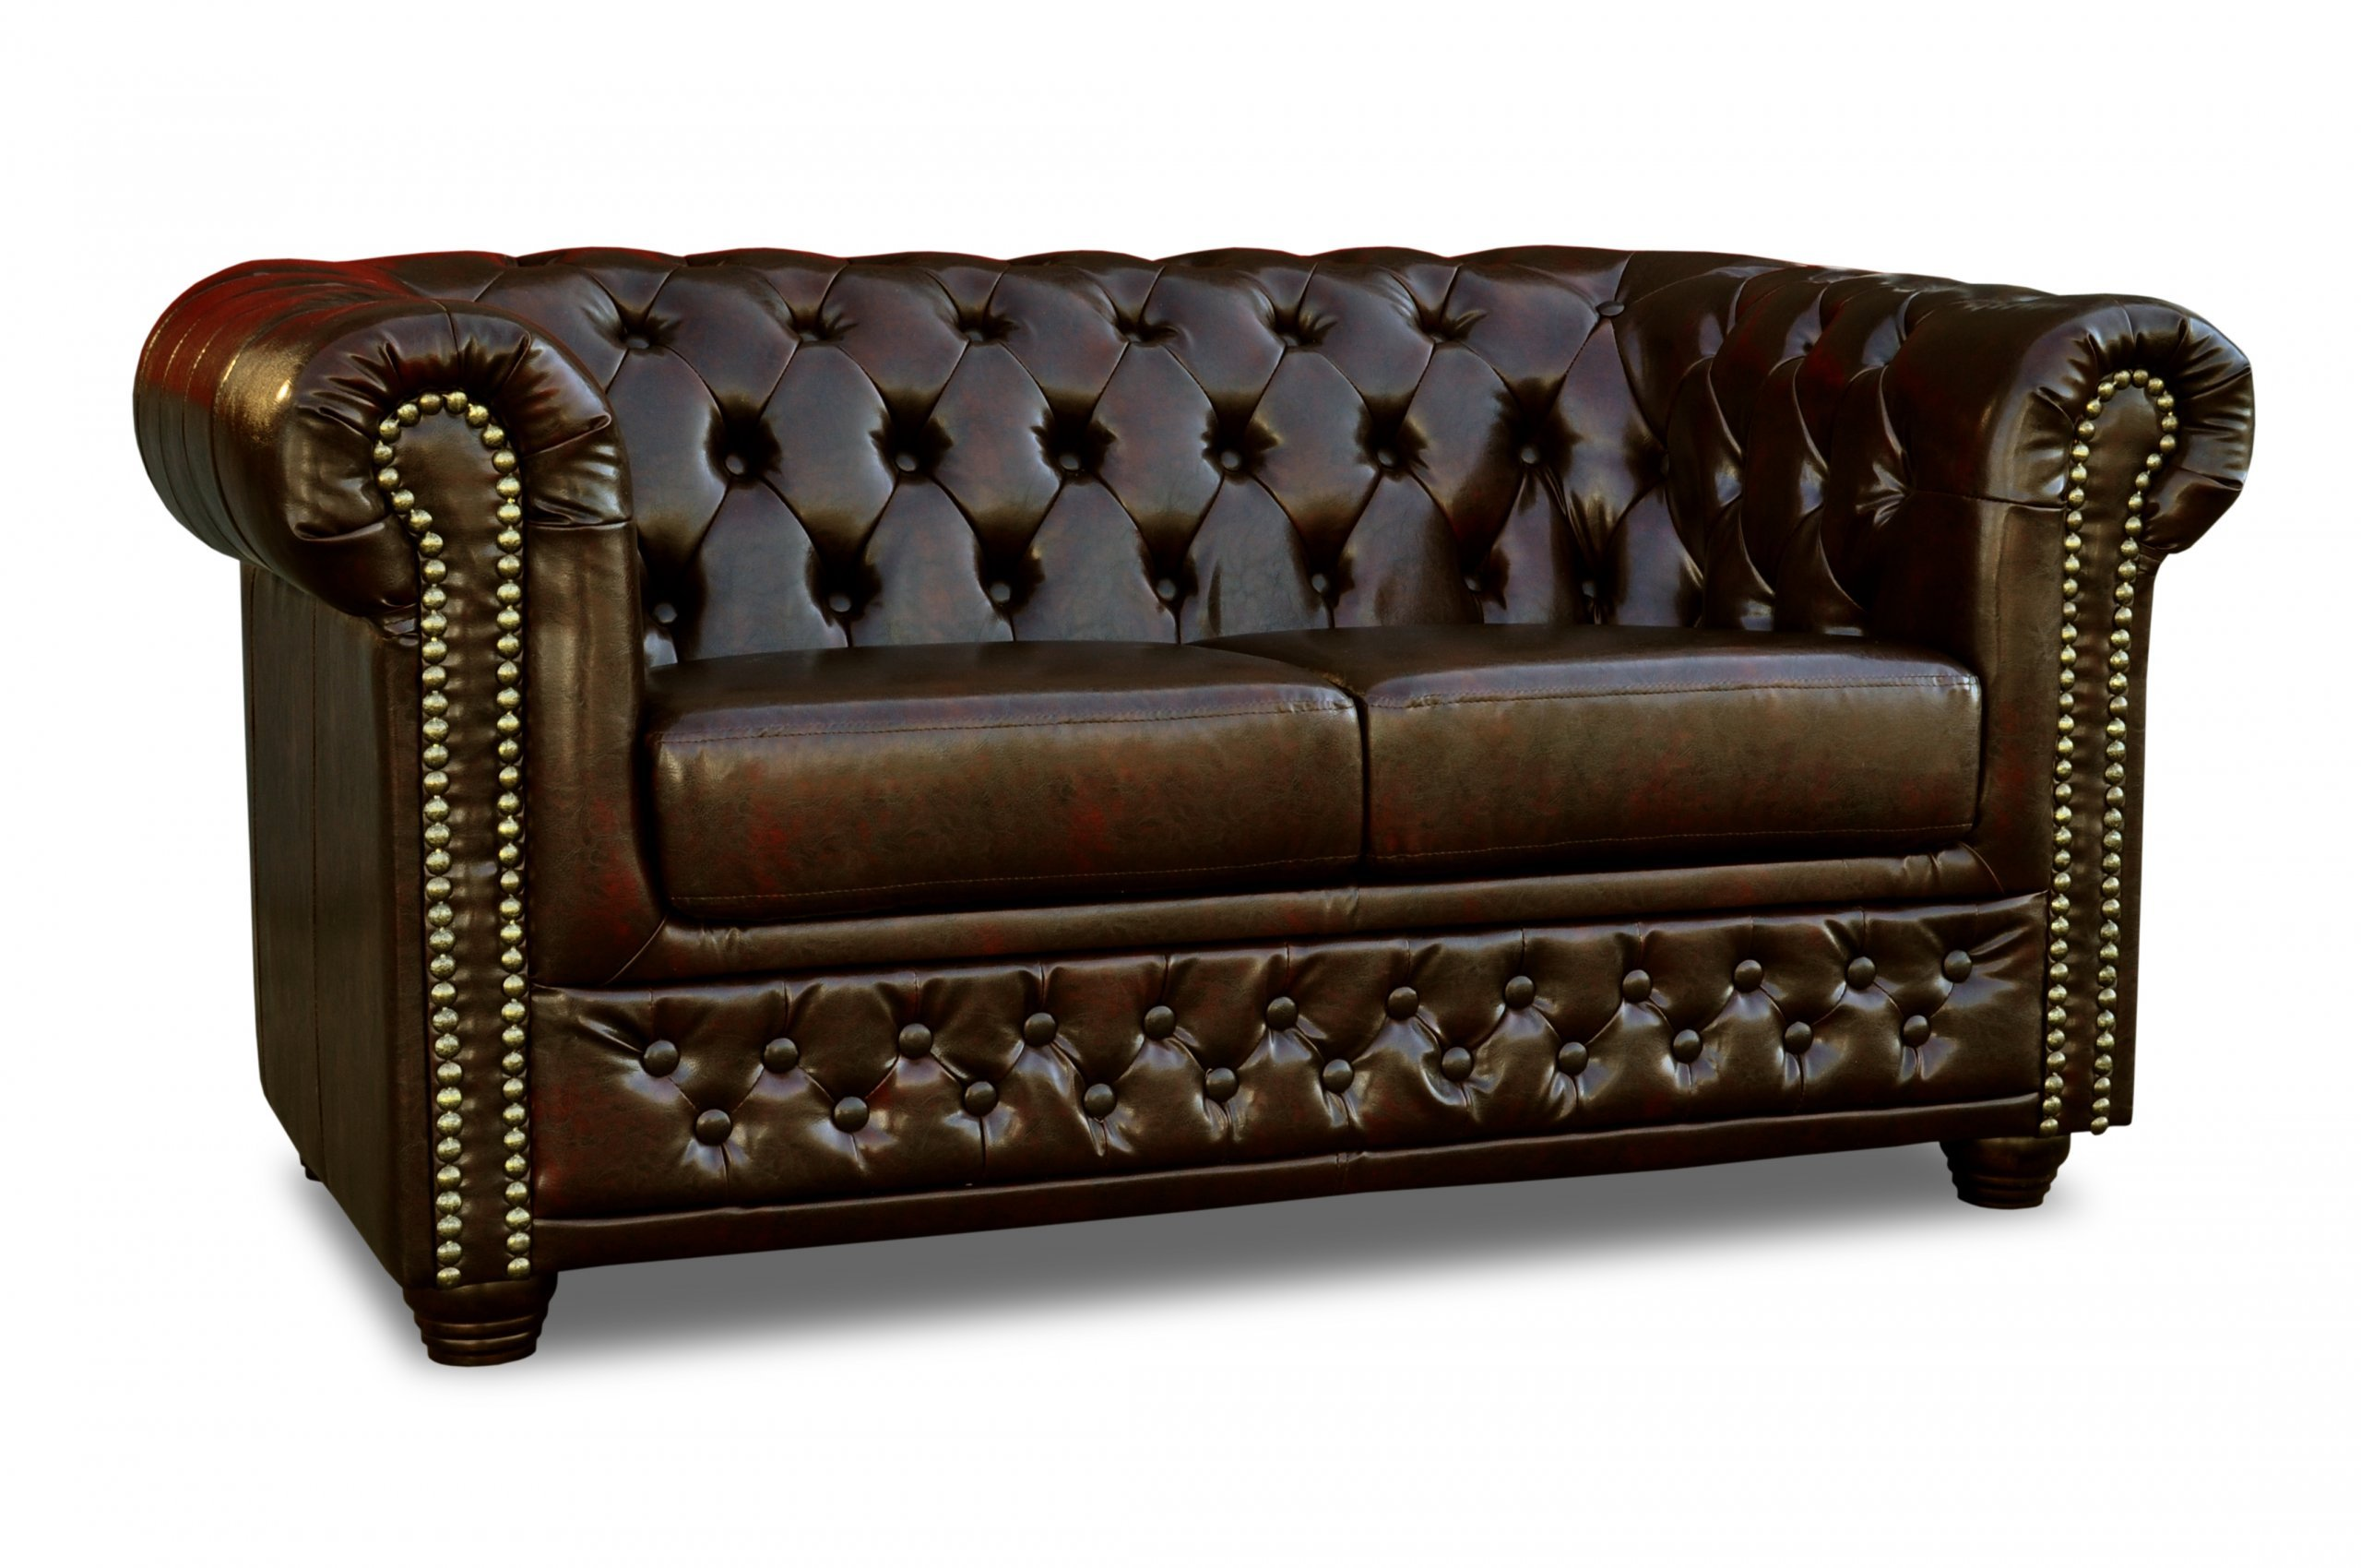 Chesterfield Sofa 3 2er Sitzer Sessel Garnitur Couch